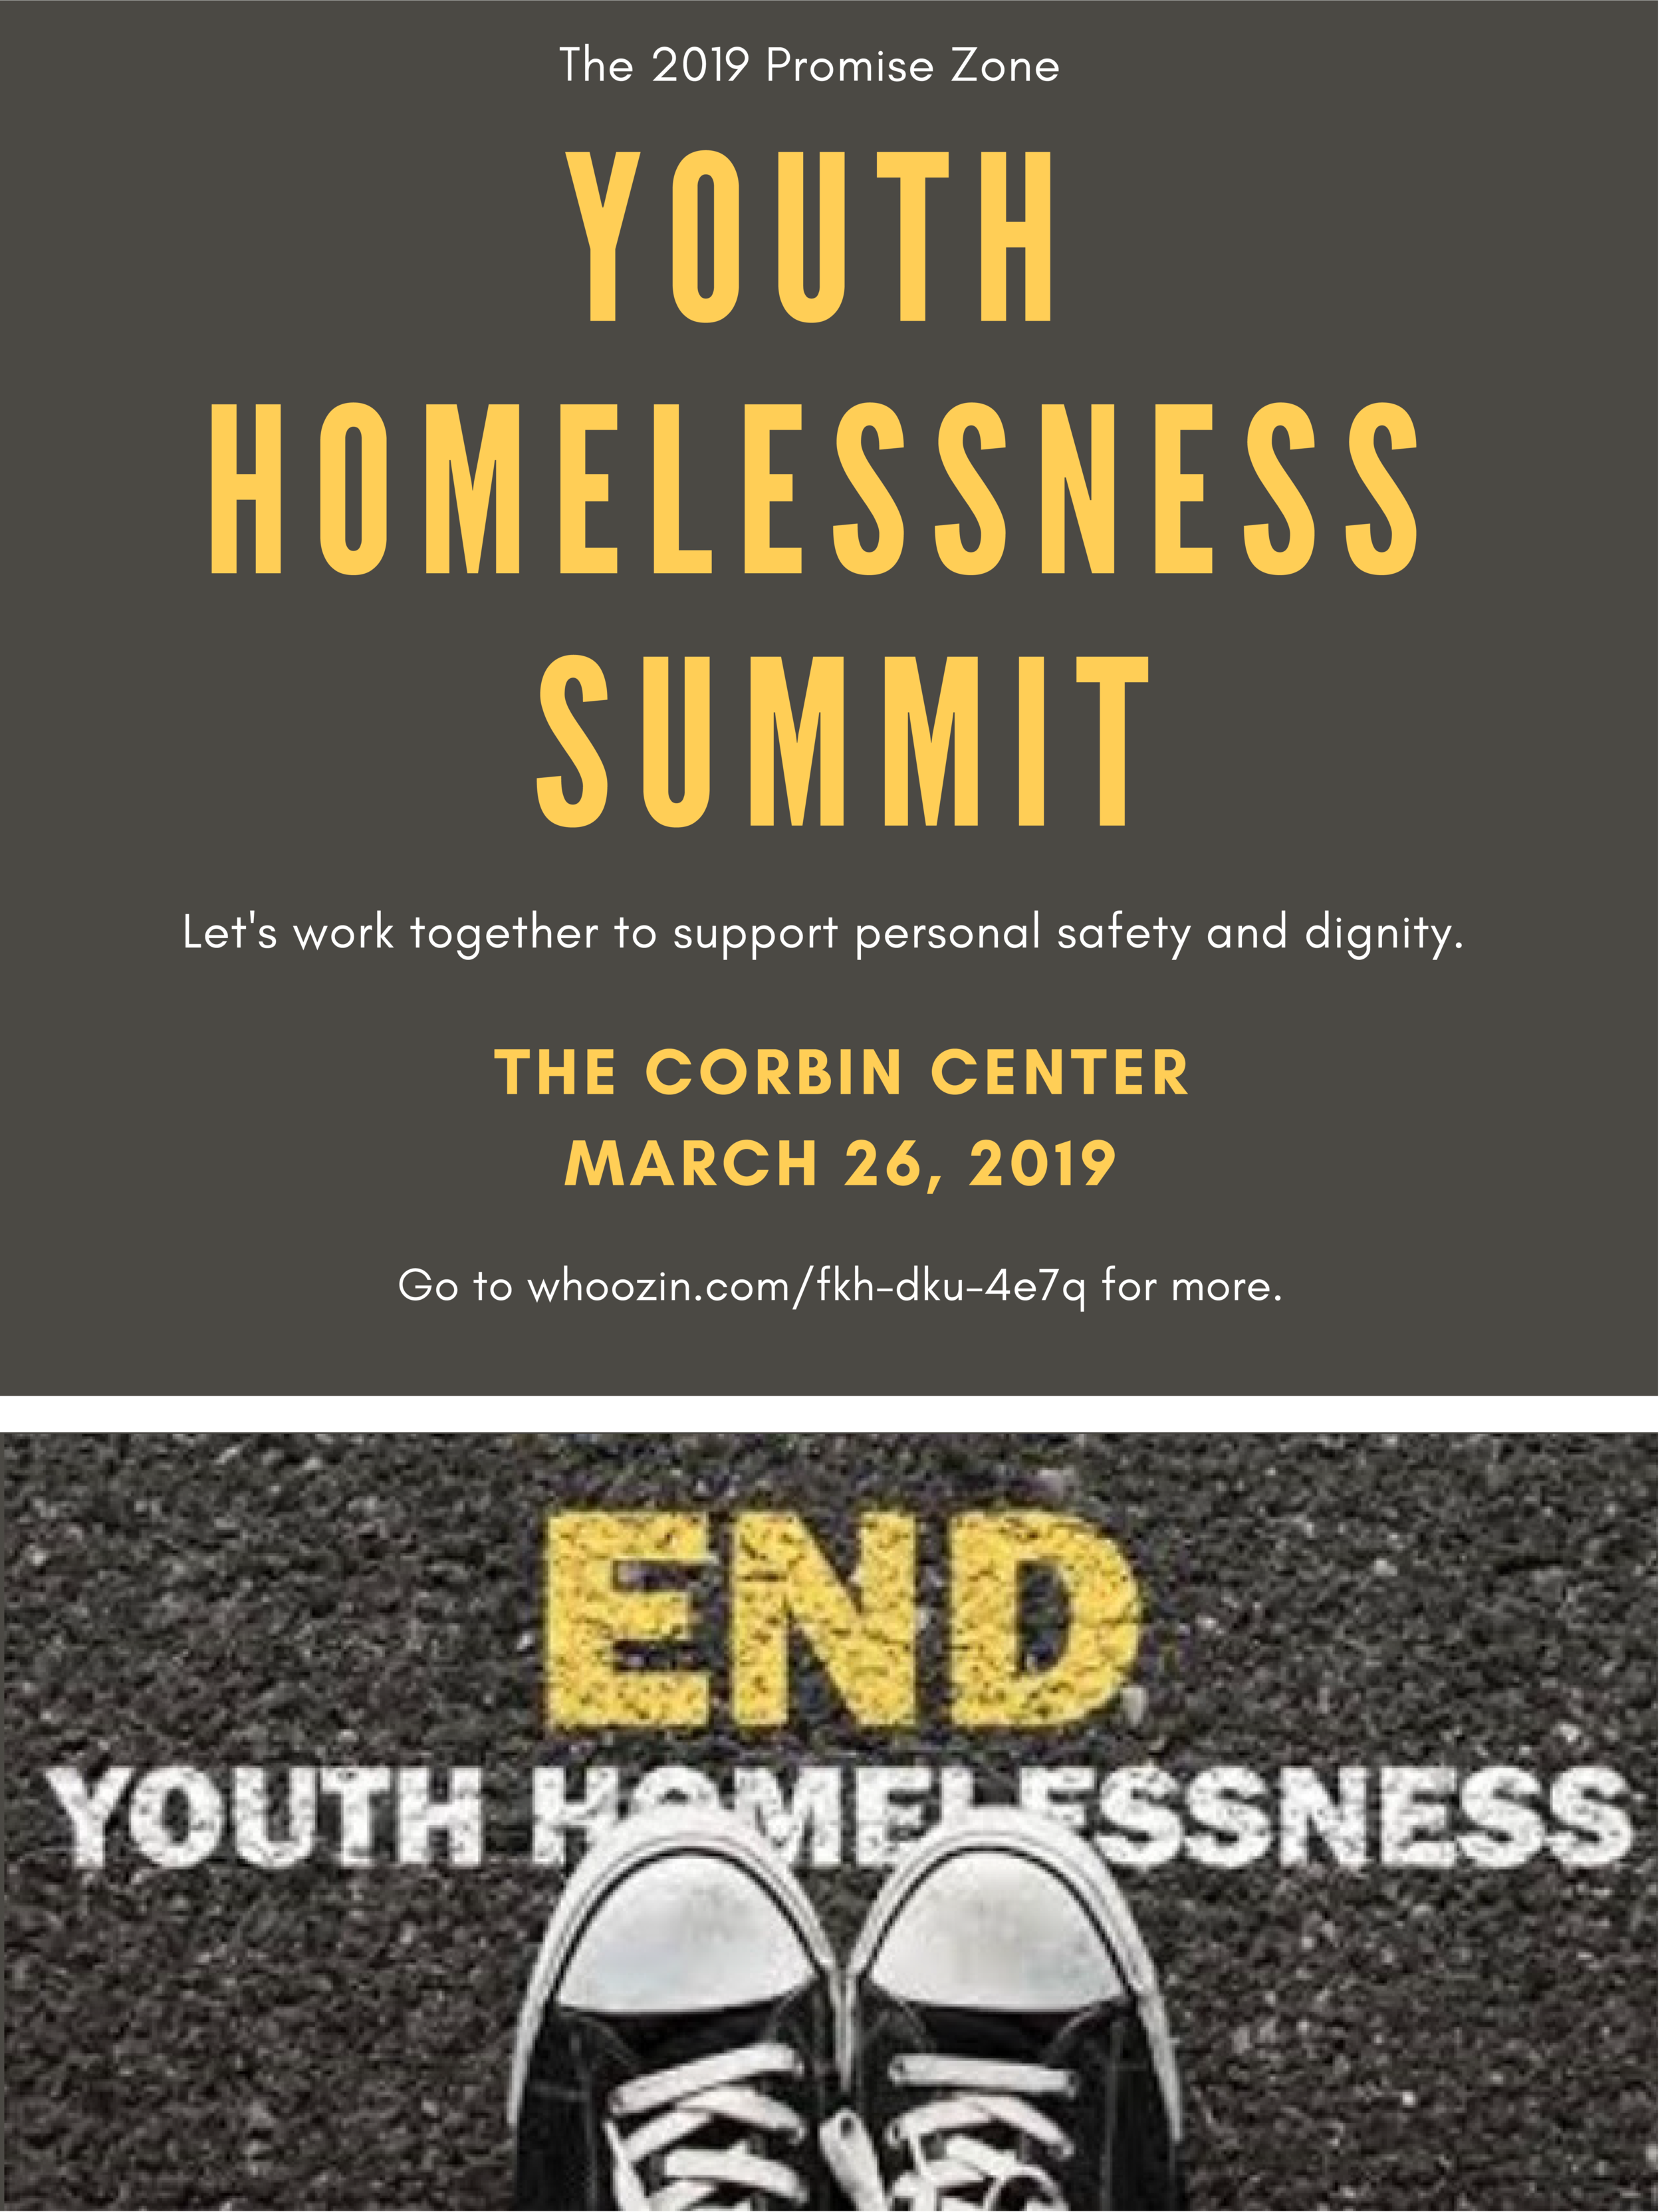 Youth Homelessness Summit Flyer.png